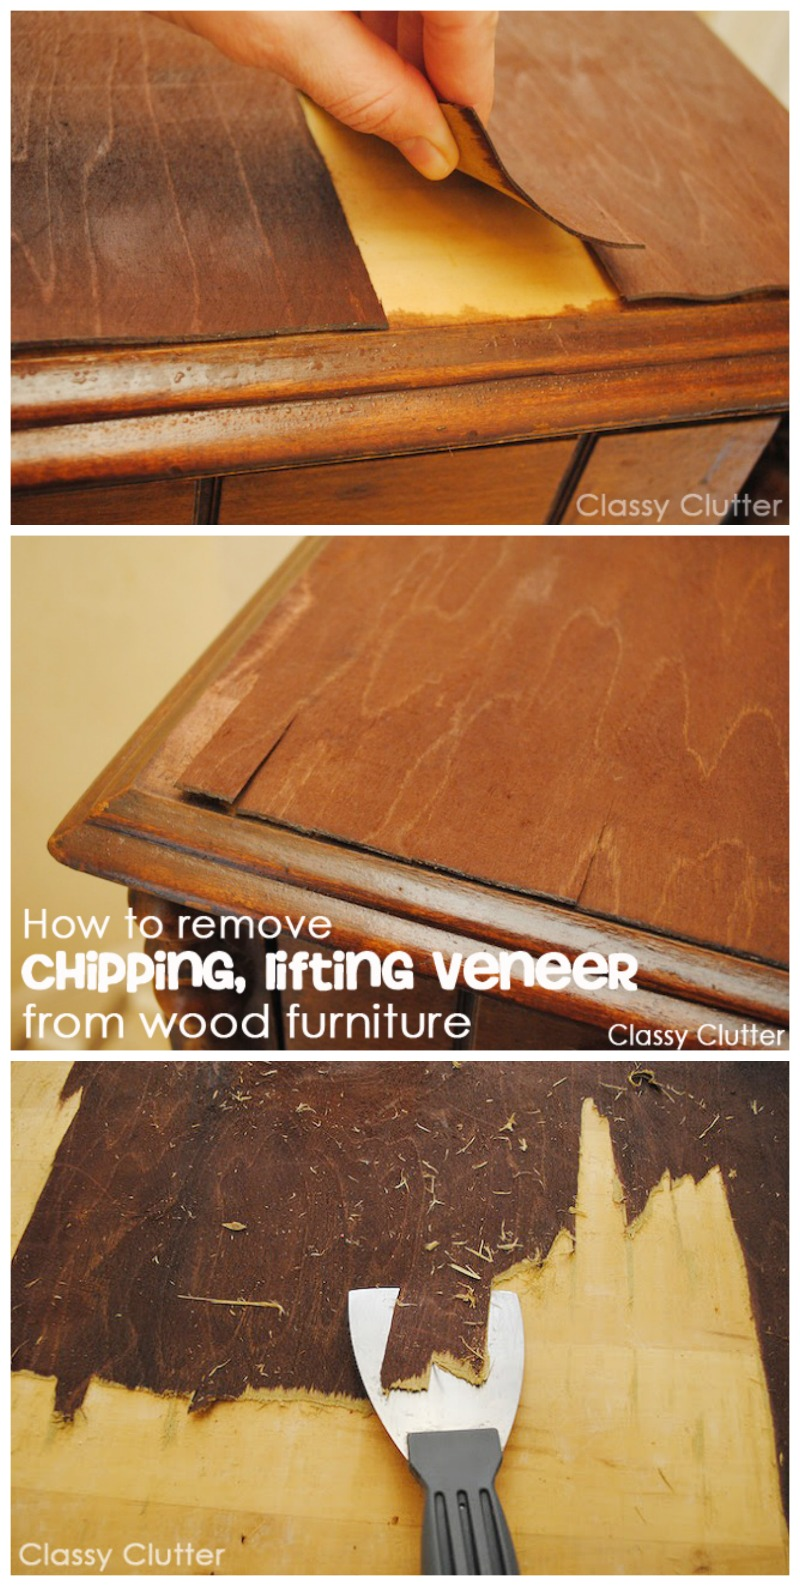 How to remove veneer from wood furniture (the easy way